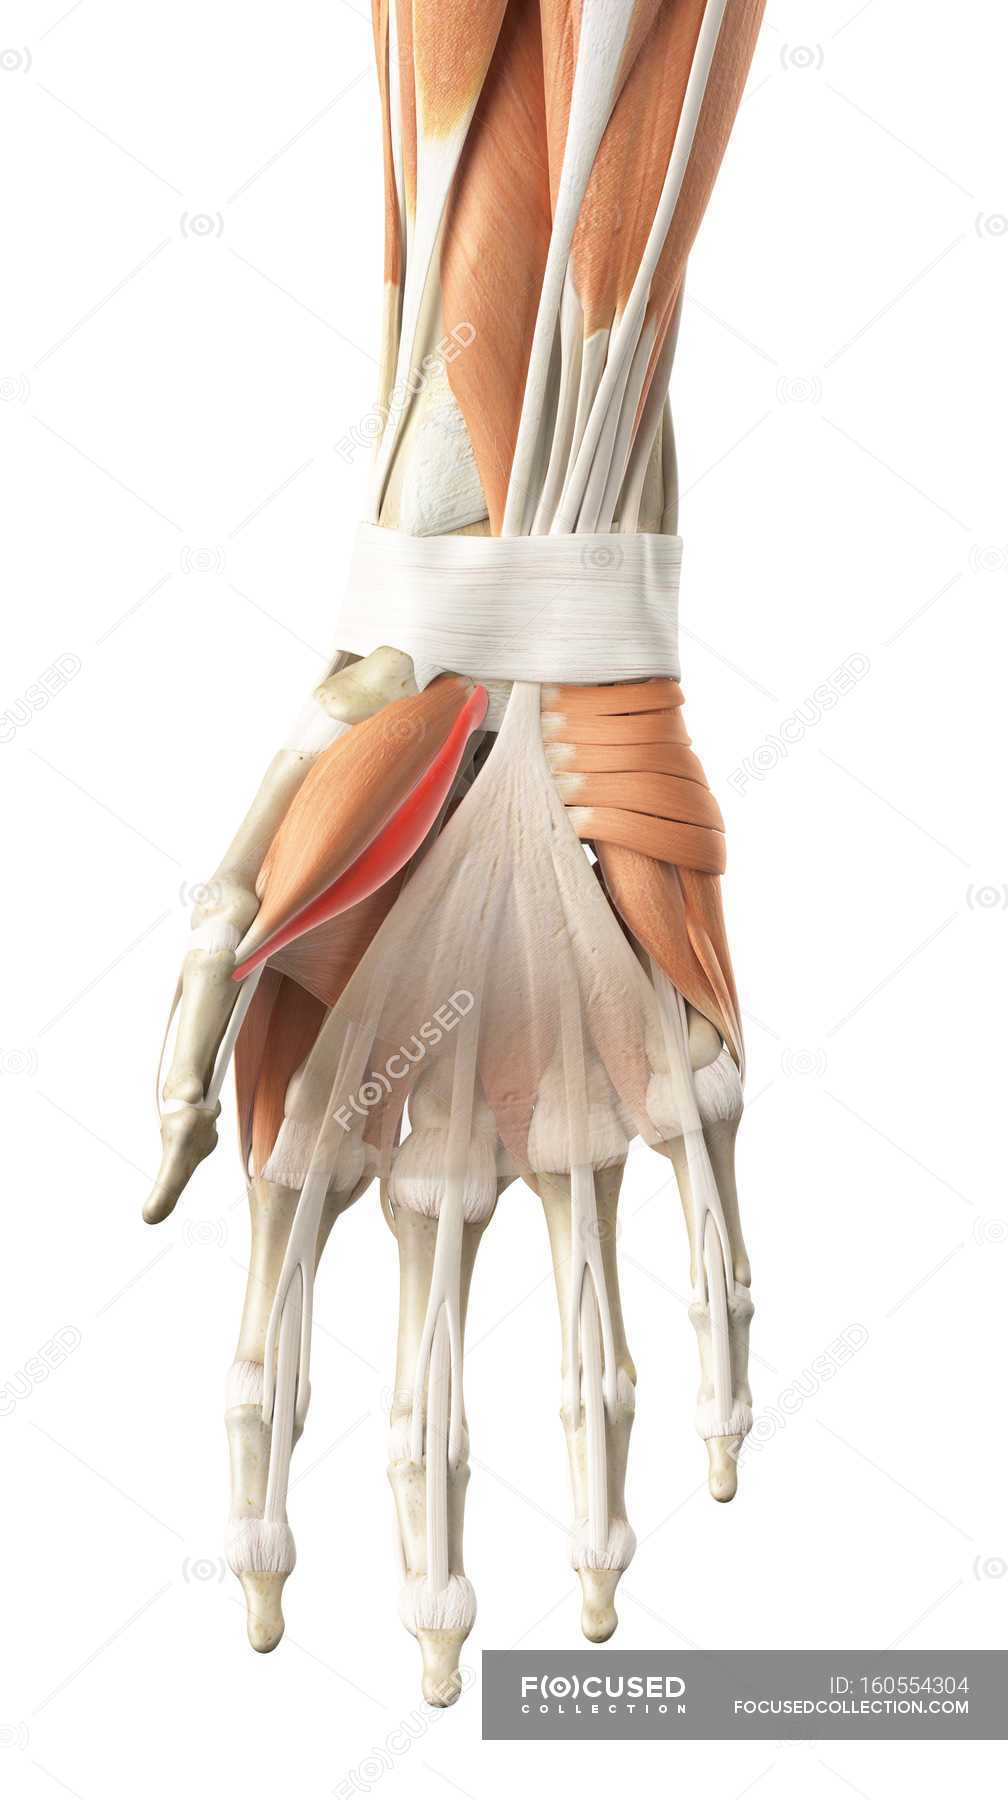 Human Hand Muscles Stock Photo 160554304